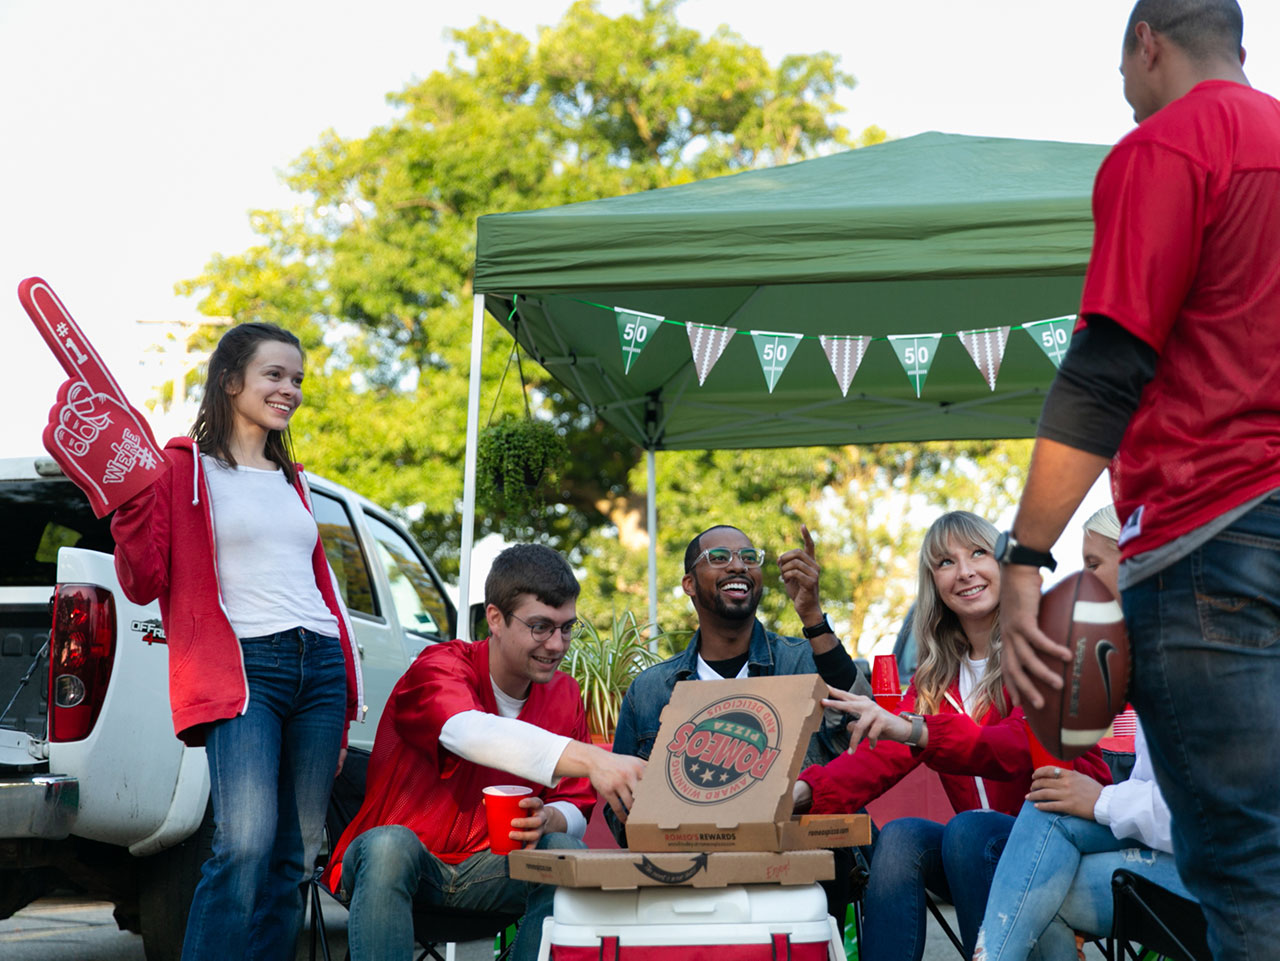 Romeo's Pizza tailgate photoshoot 4